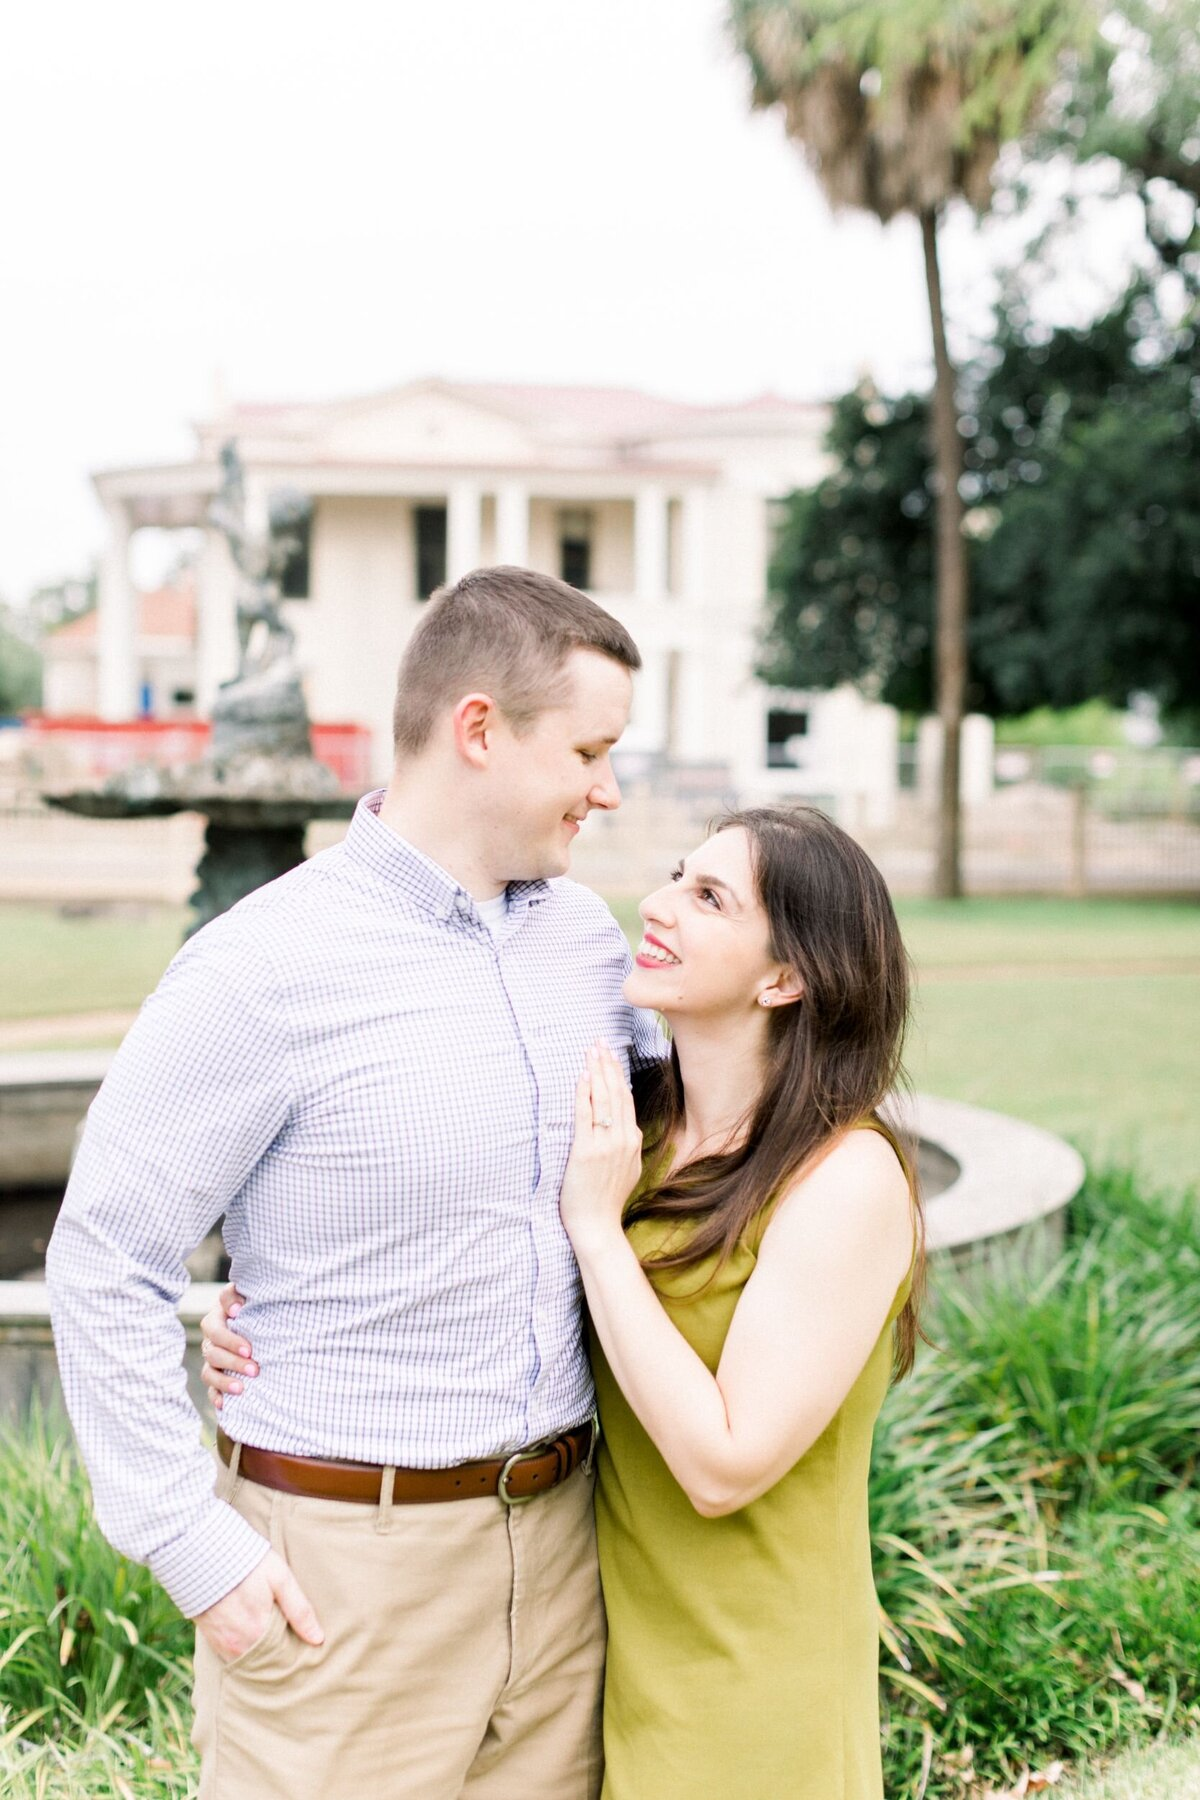 KingWilliamEngagement-AnnaKayPhotography-SanAntonioWeddingPhotographer-8